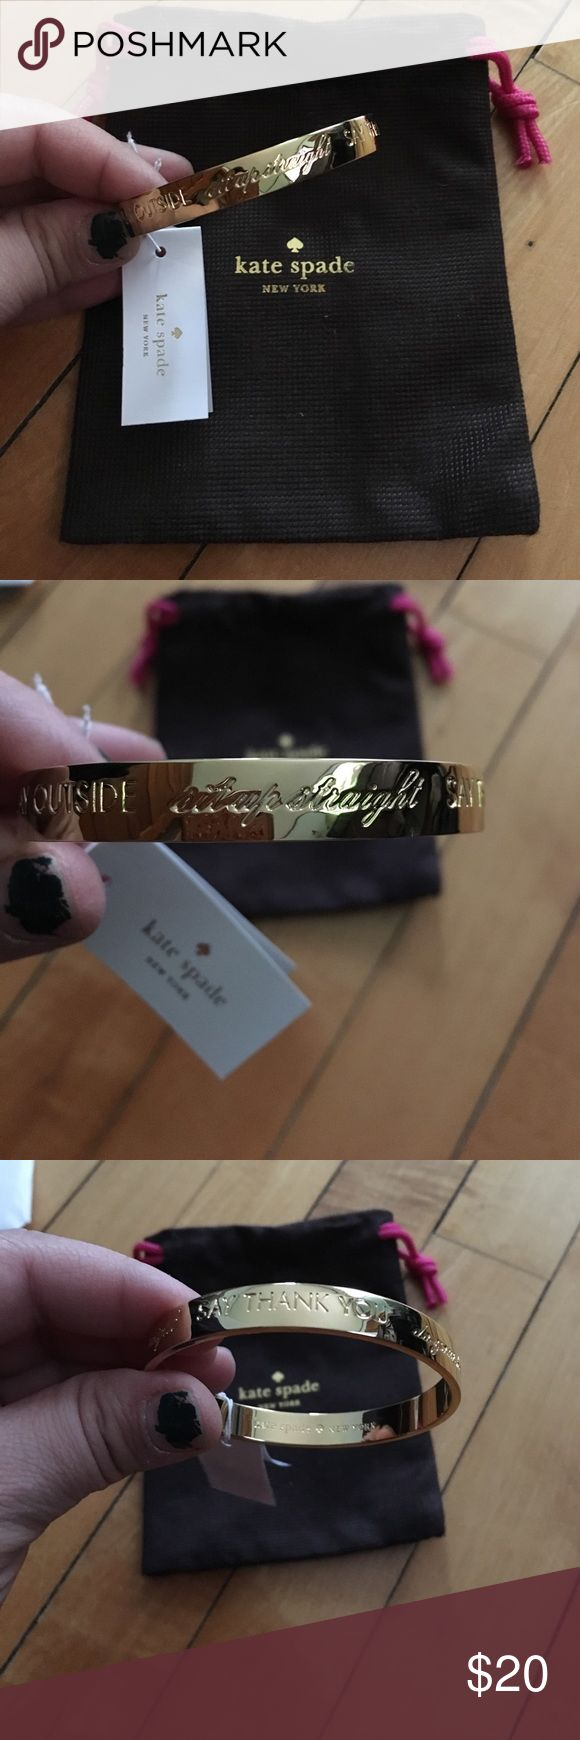 NWT Kate Spade ♠️ gold engraved bracelet Beautiful NWT Kate Spade ♠️ gold engraved gratitude bracelet, given as a gift but never worn. kate spade Accessories